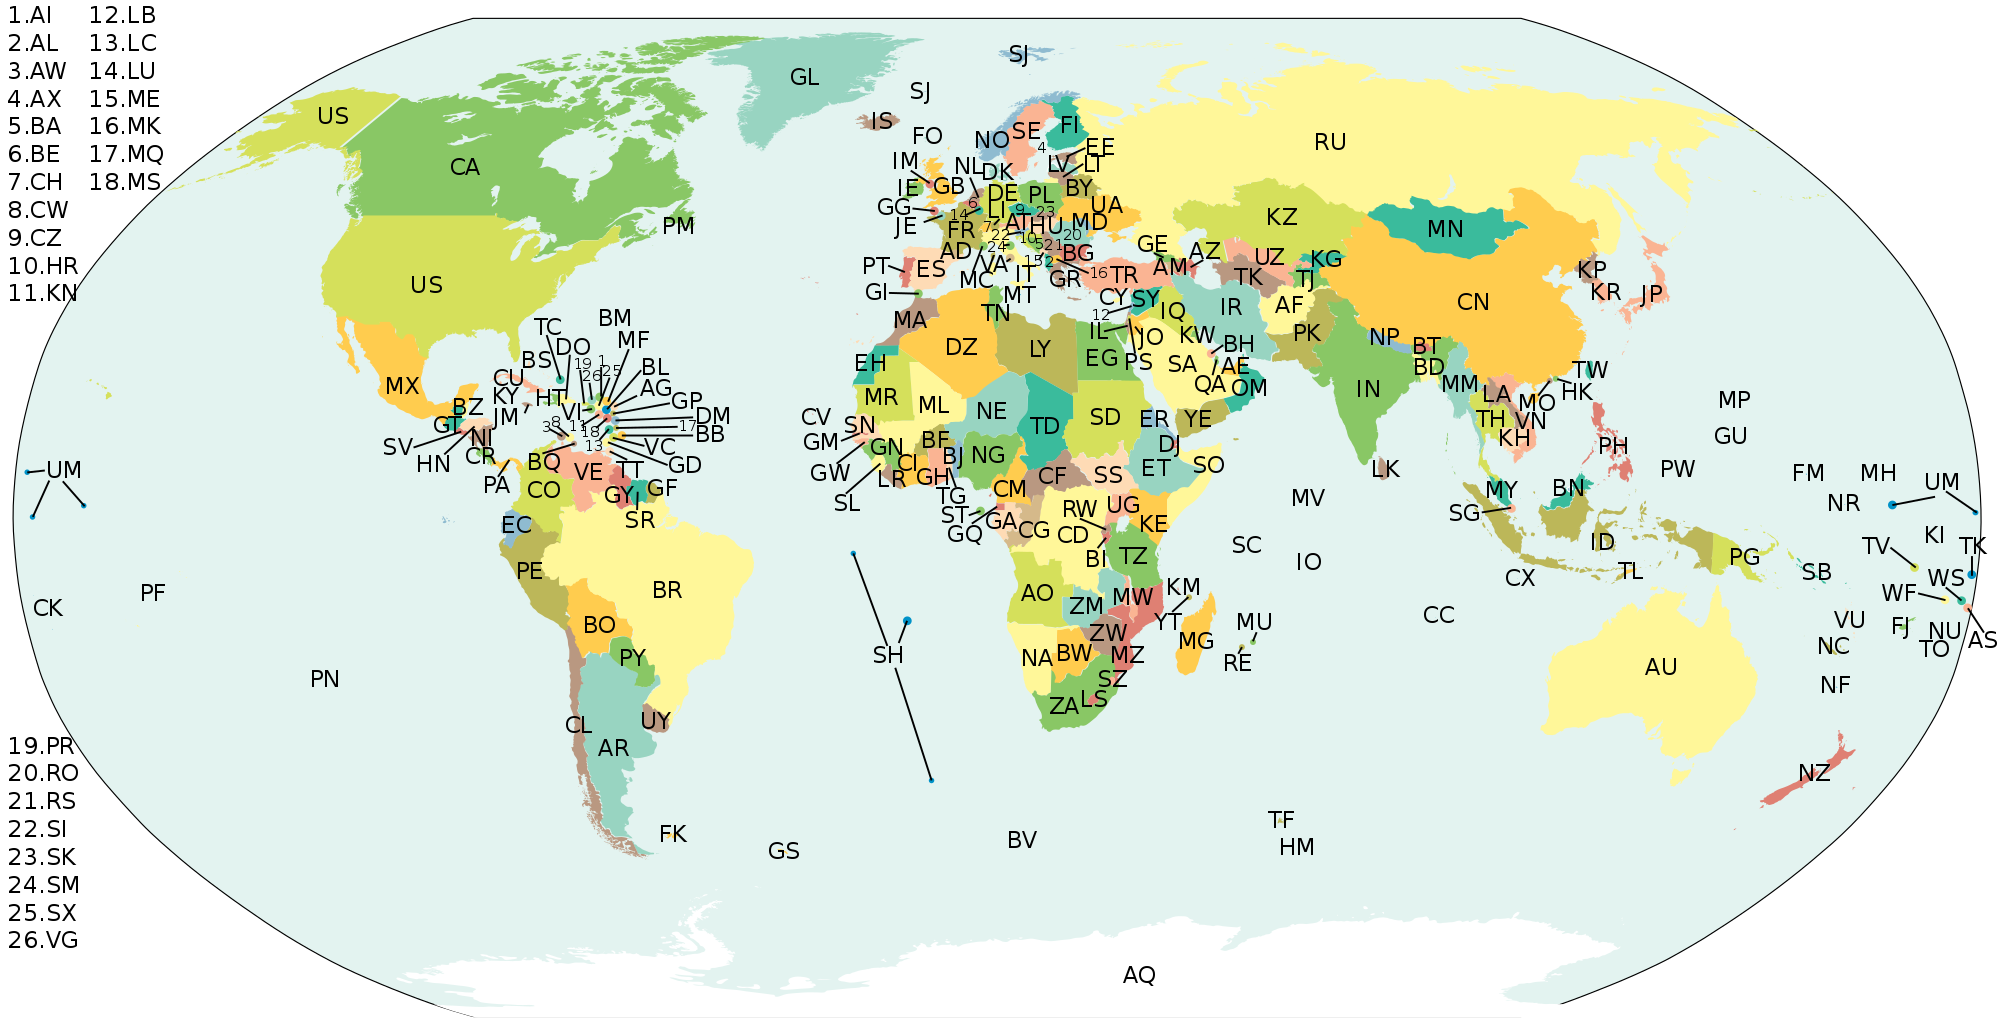 Managing geographical data: ISO3166, UN/LOCODE and GeoNames